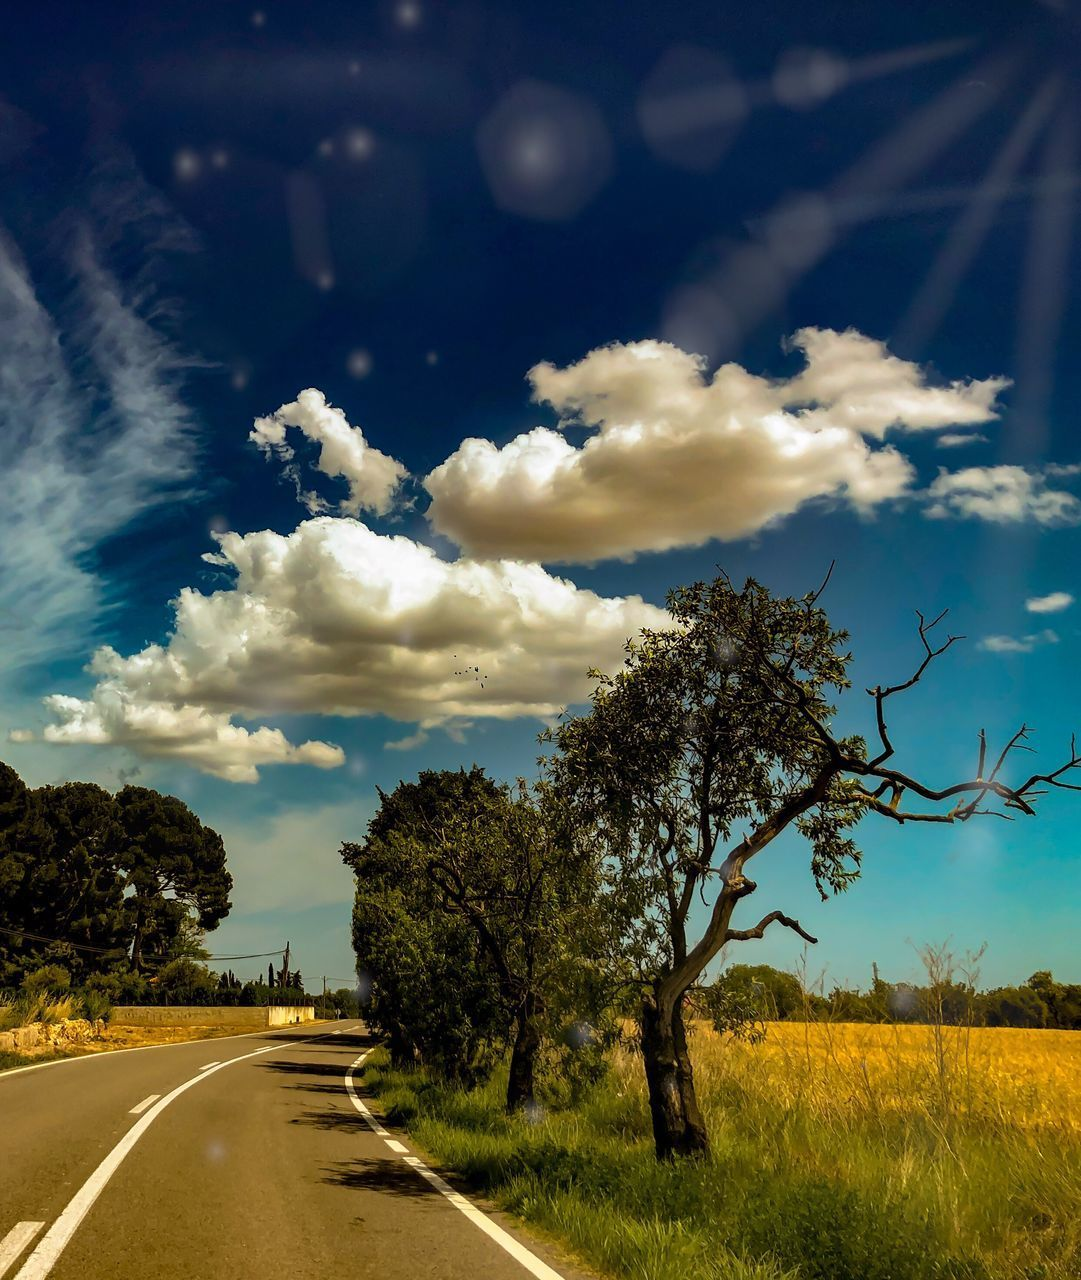 sky, plant, road, cloud - sky, tree, direction, transportation, the way forward, nature, field, landscape, no people, land, beauty in nature, environment, tranquility, tranquil scene, scenics - nature, symbol, sign, diminishing perspective, outdoors, dividing line, long